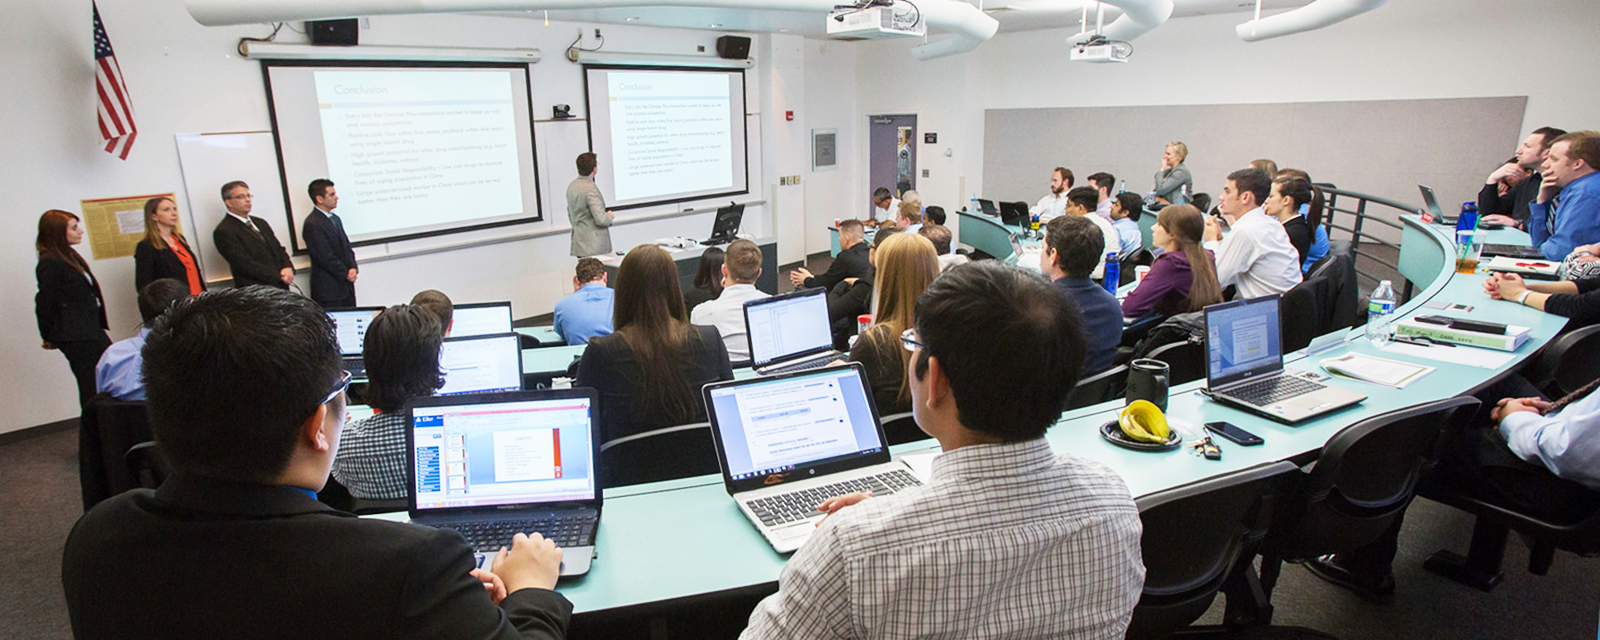 Photo of students in a computer class